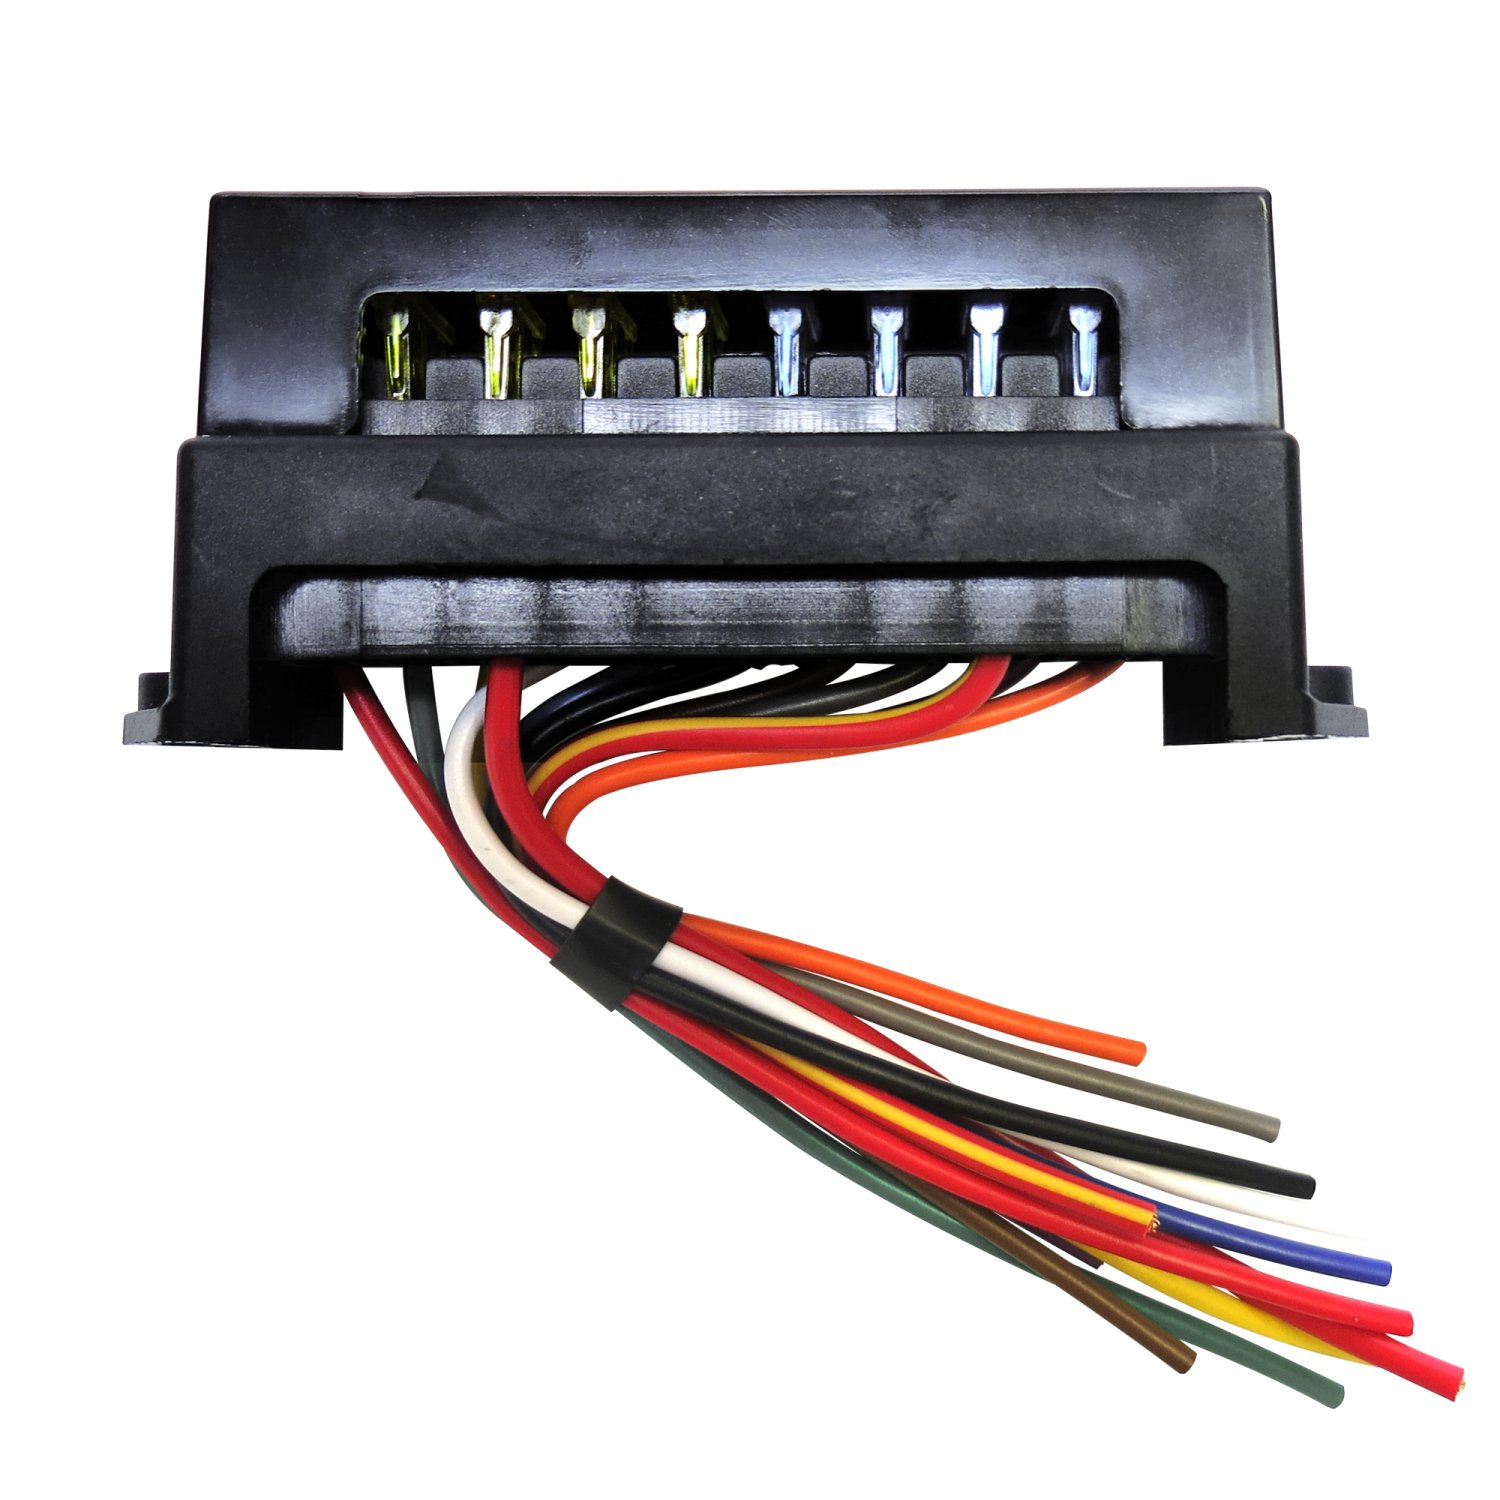 hight resolution of 10 atc fuse block with cover fuse 10 fuses material plastic cover included style atc terminals plated testing terminal built in wire